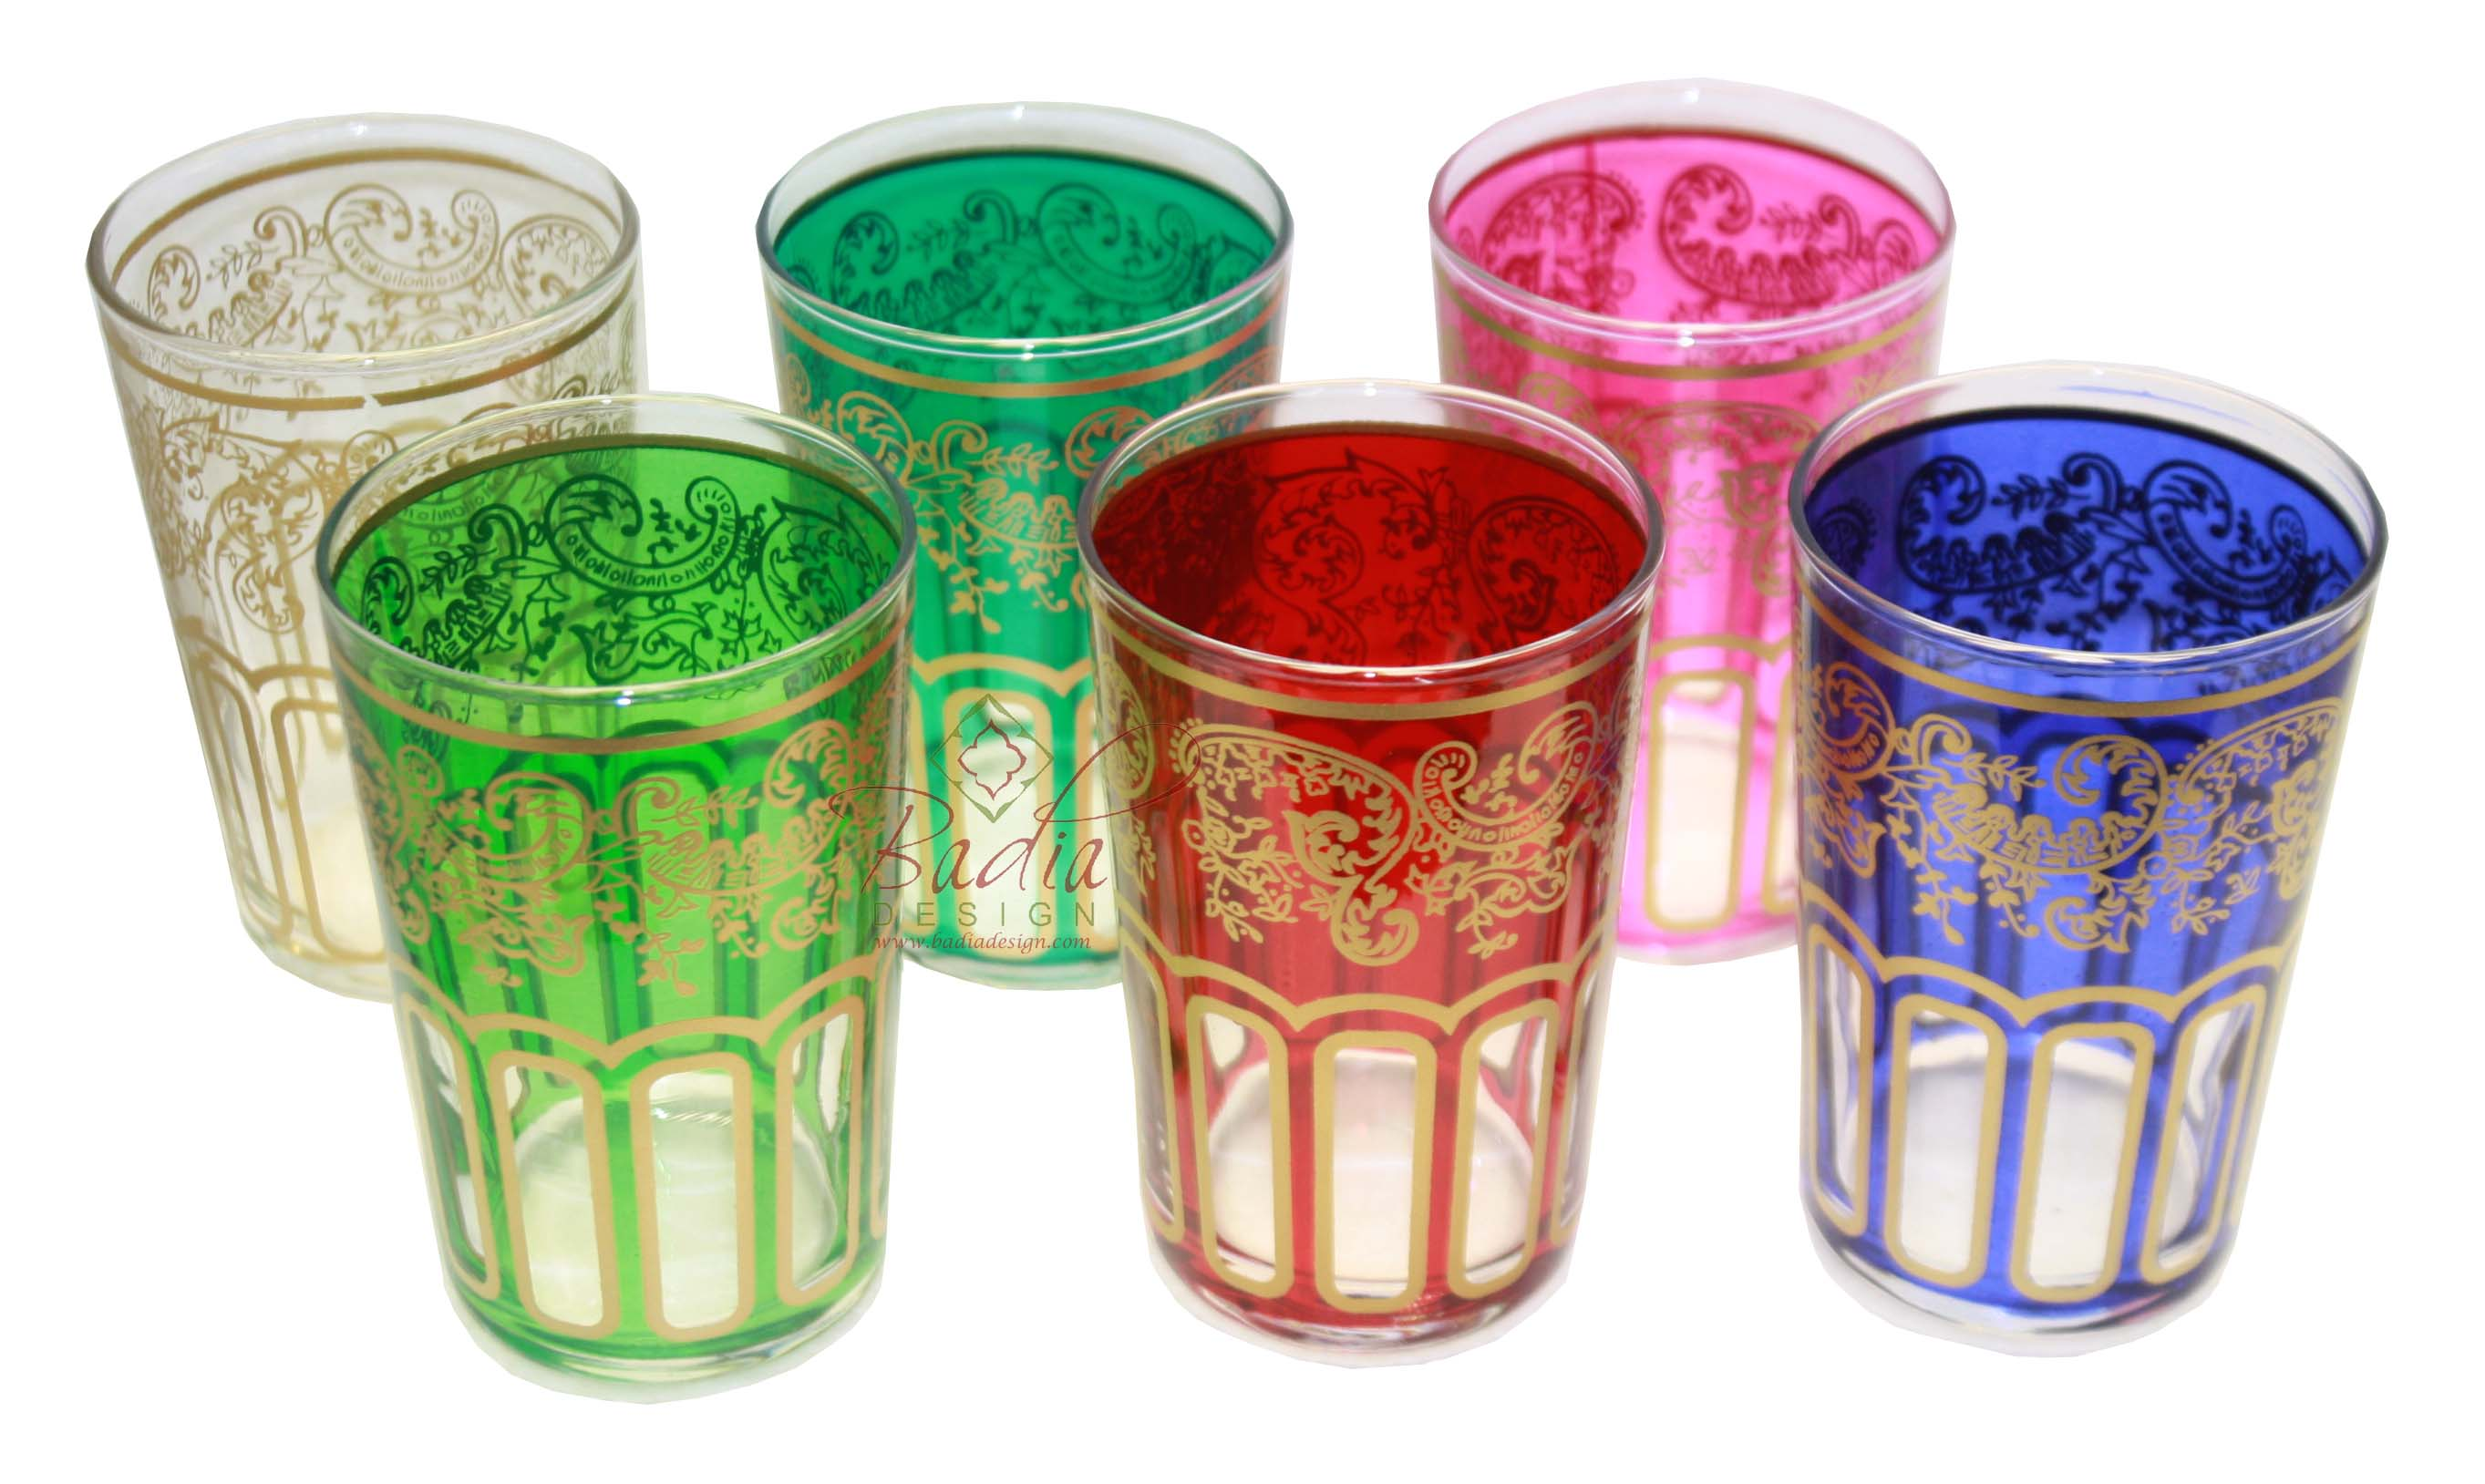 moroccan-glass-tea-cups-los-angeles-tg20ac-41.jpg